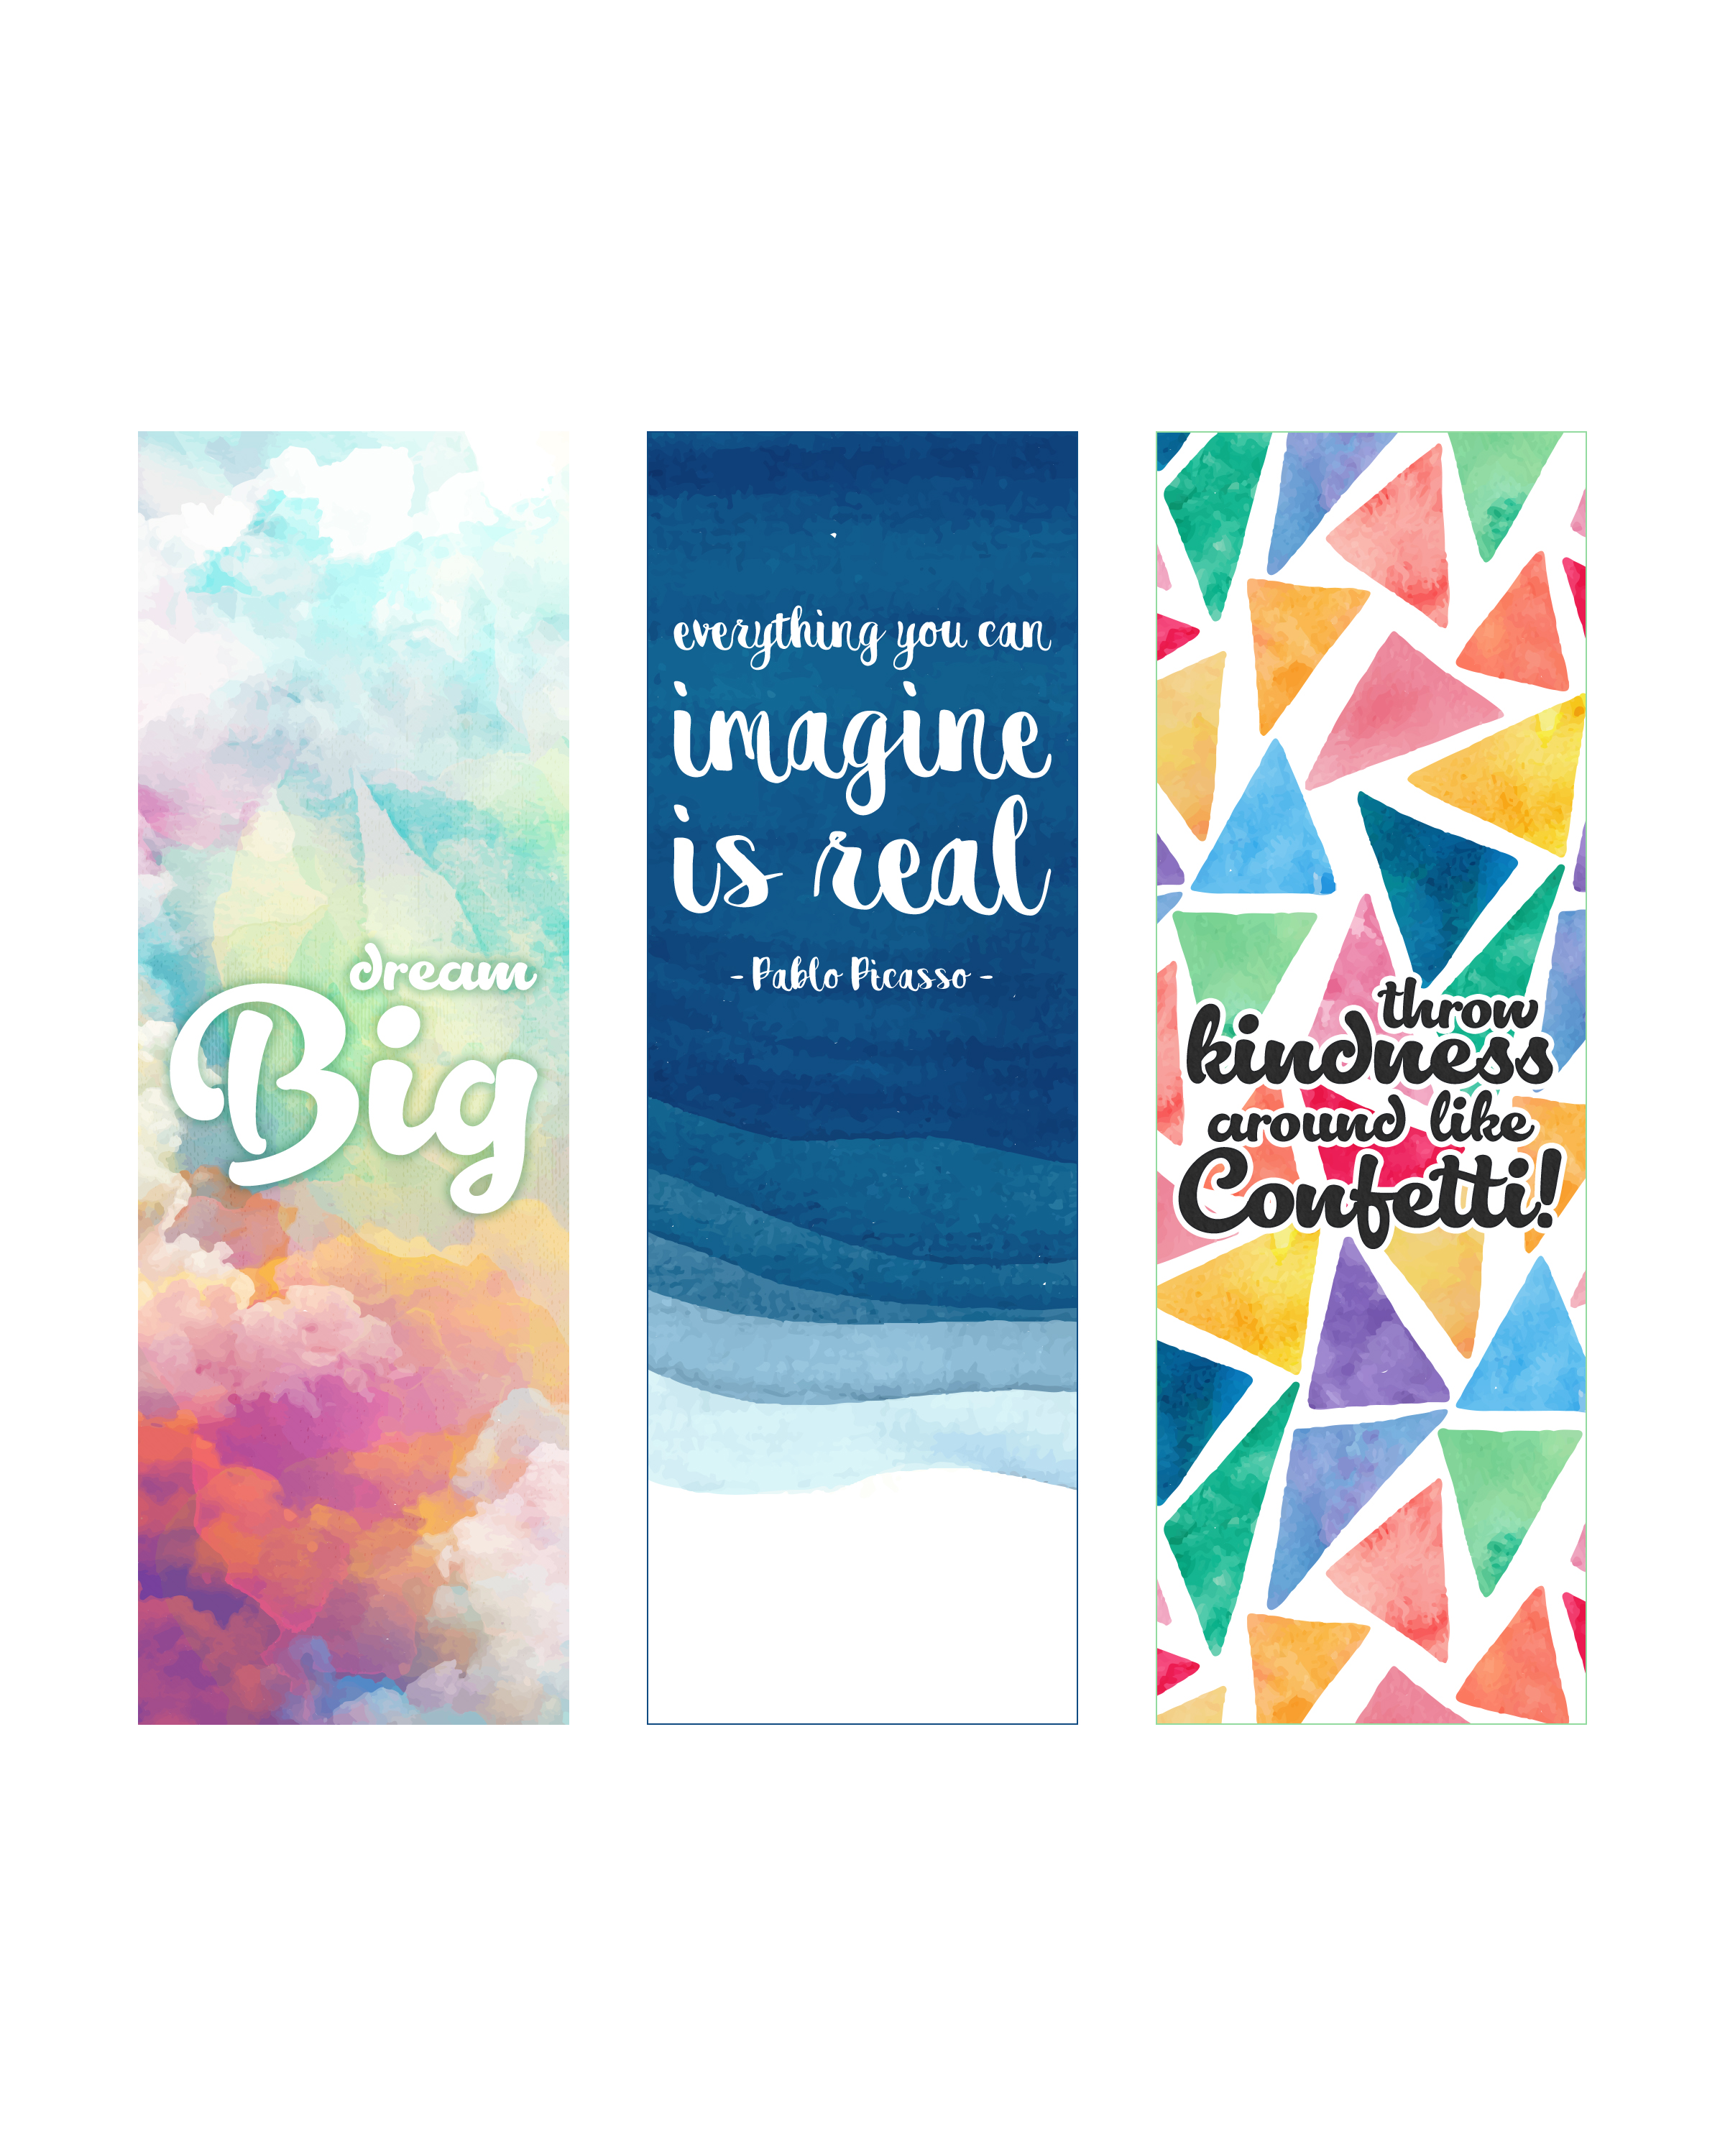 photo regarding Free Printable Bookmarks With Quotes identify Cost-free Printable Inspirational Quotation Bookmarks - The Cottage